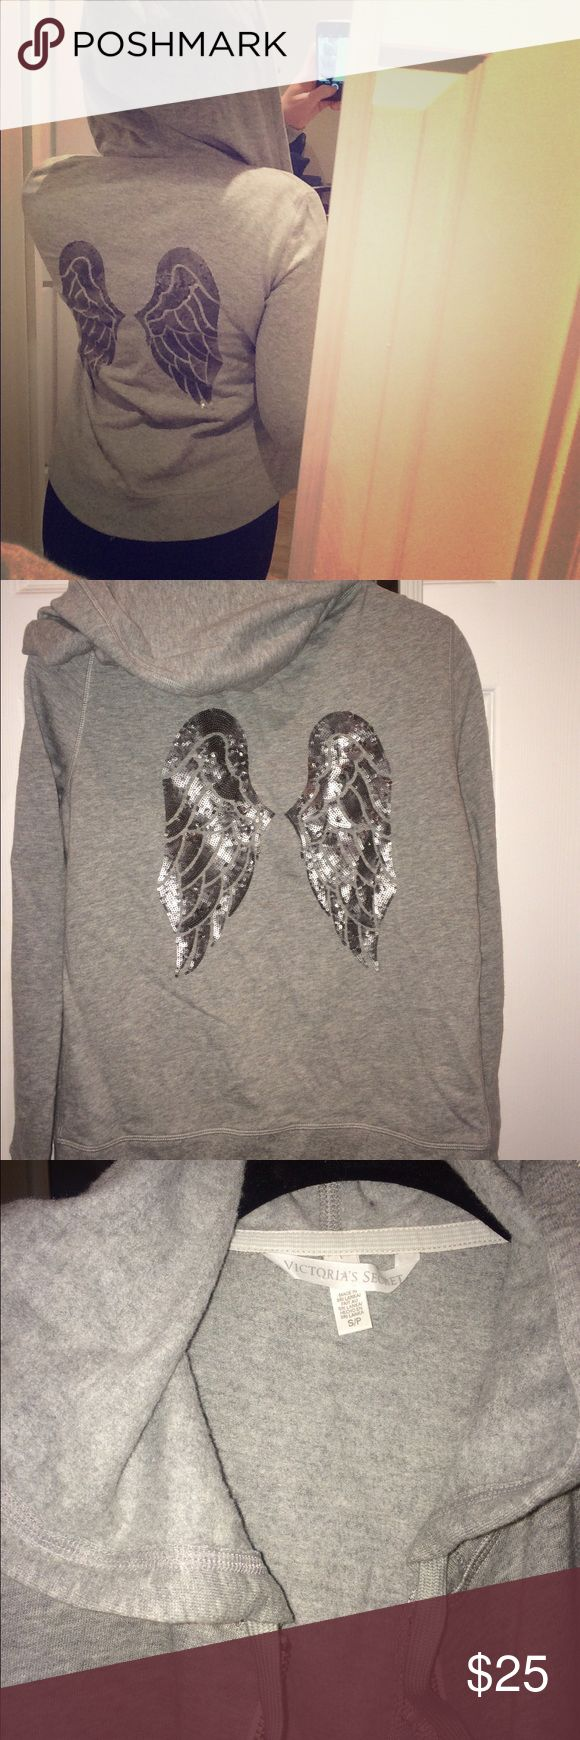 VS Grey zip up hoodie Never worn grey zip up hooded sweatshirt from VS. Fitted, moderately warm, and so cozy. Well-made and all sequins on the wing design are in tact. Victoria's Secret Tops Sweatshirts & Hoodies